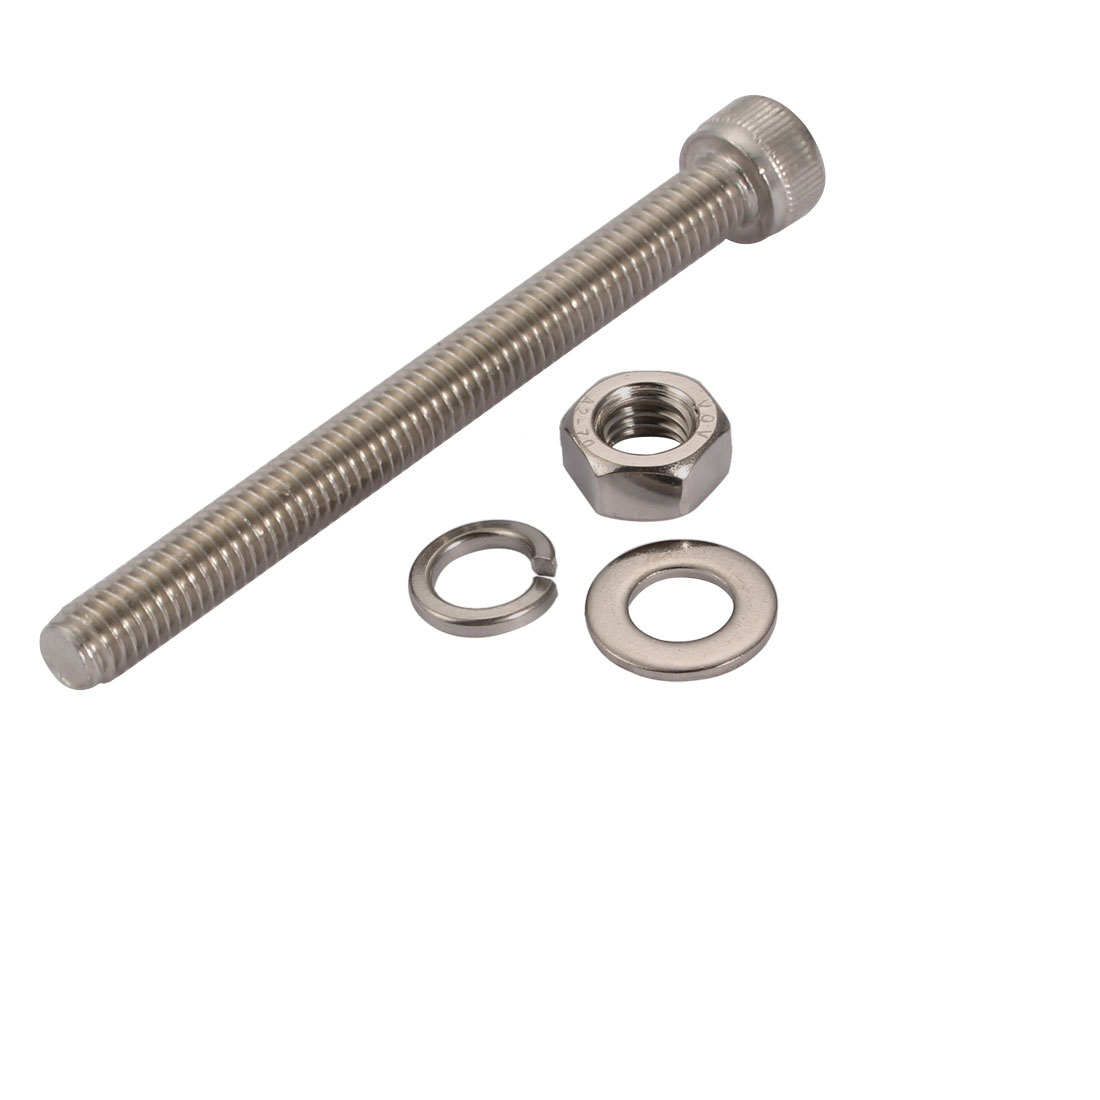 10Pcs M6x65mm 304 Stainless Steel Knurled Hex Socket Head Bolts Nuts Set w Washers - image 3 of 5